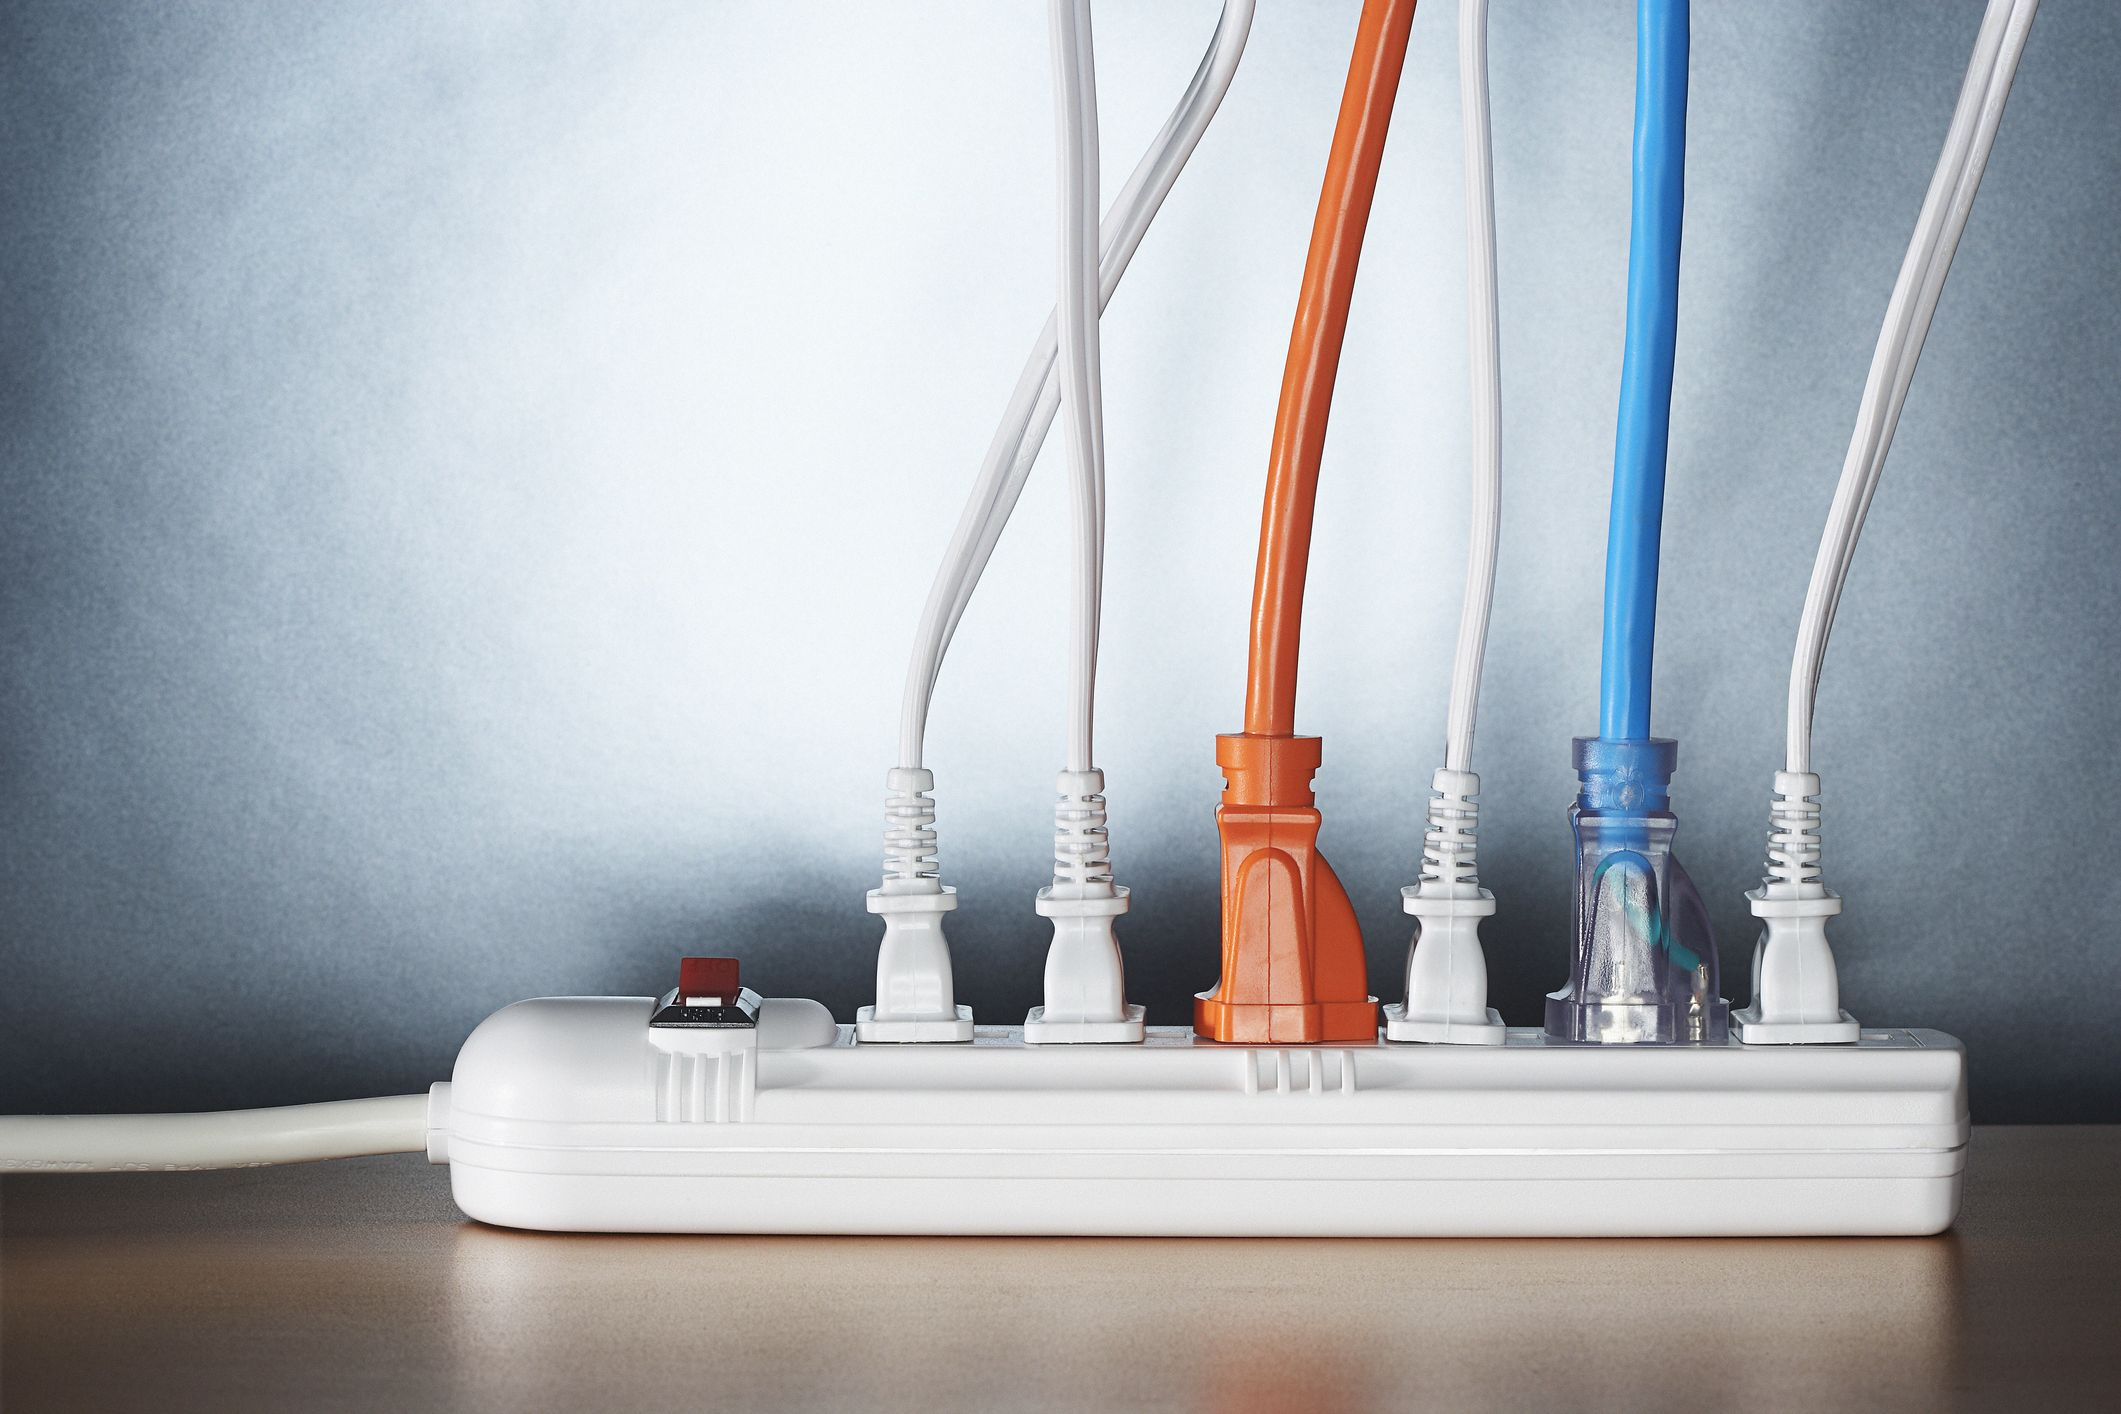 Diy Extension Cord With Built In Switch Safe Quick And Simple 2